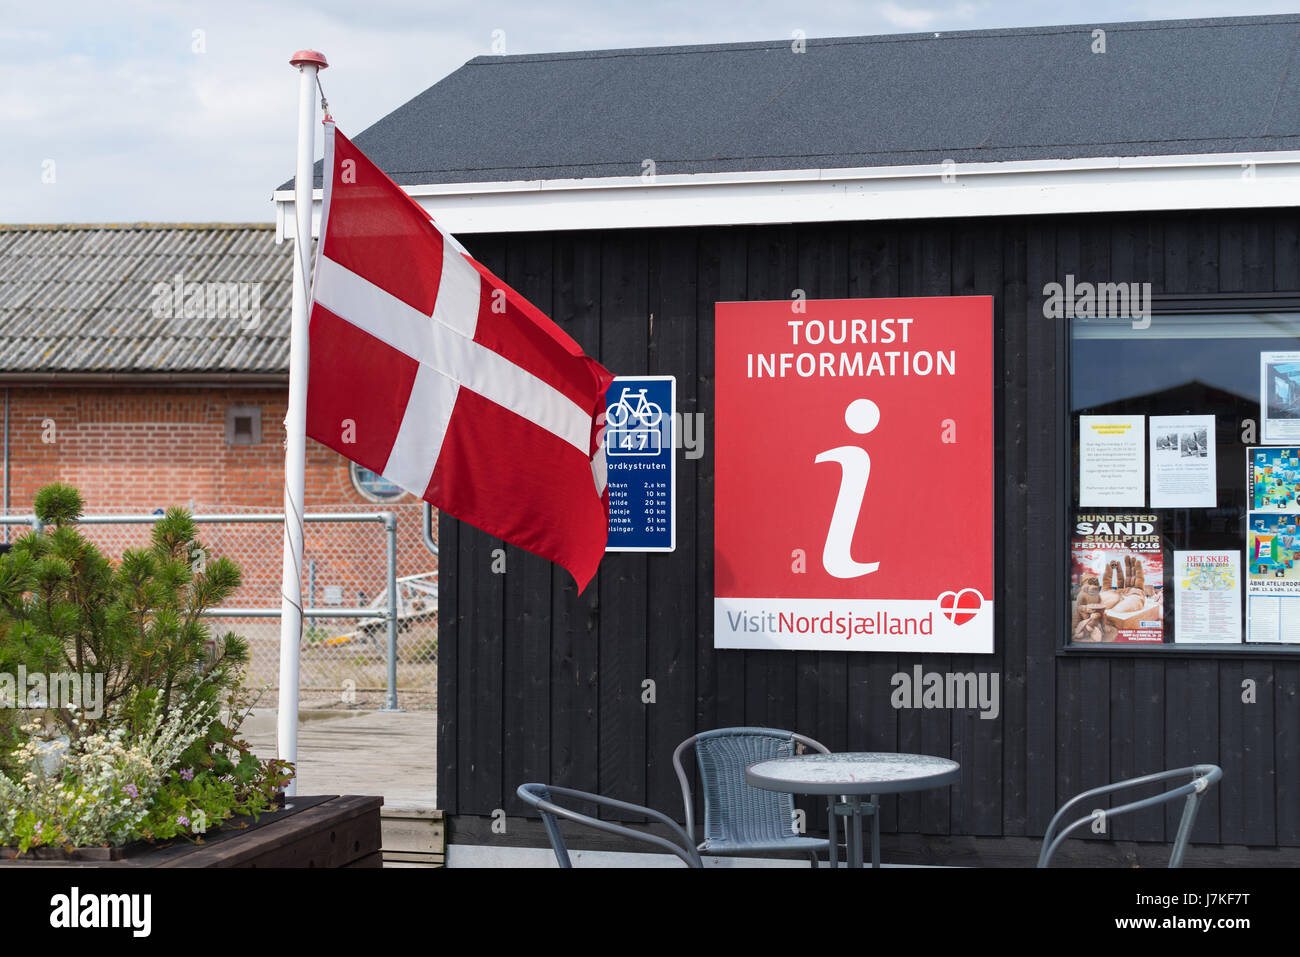 HUNDESTED, DENMARK - AUGUST 8, 2016: Tourist information office in Hundested, a small tourist village in the northern - Stock Image